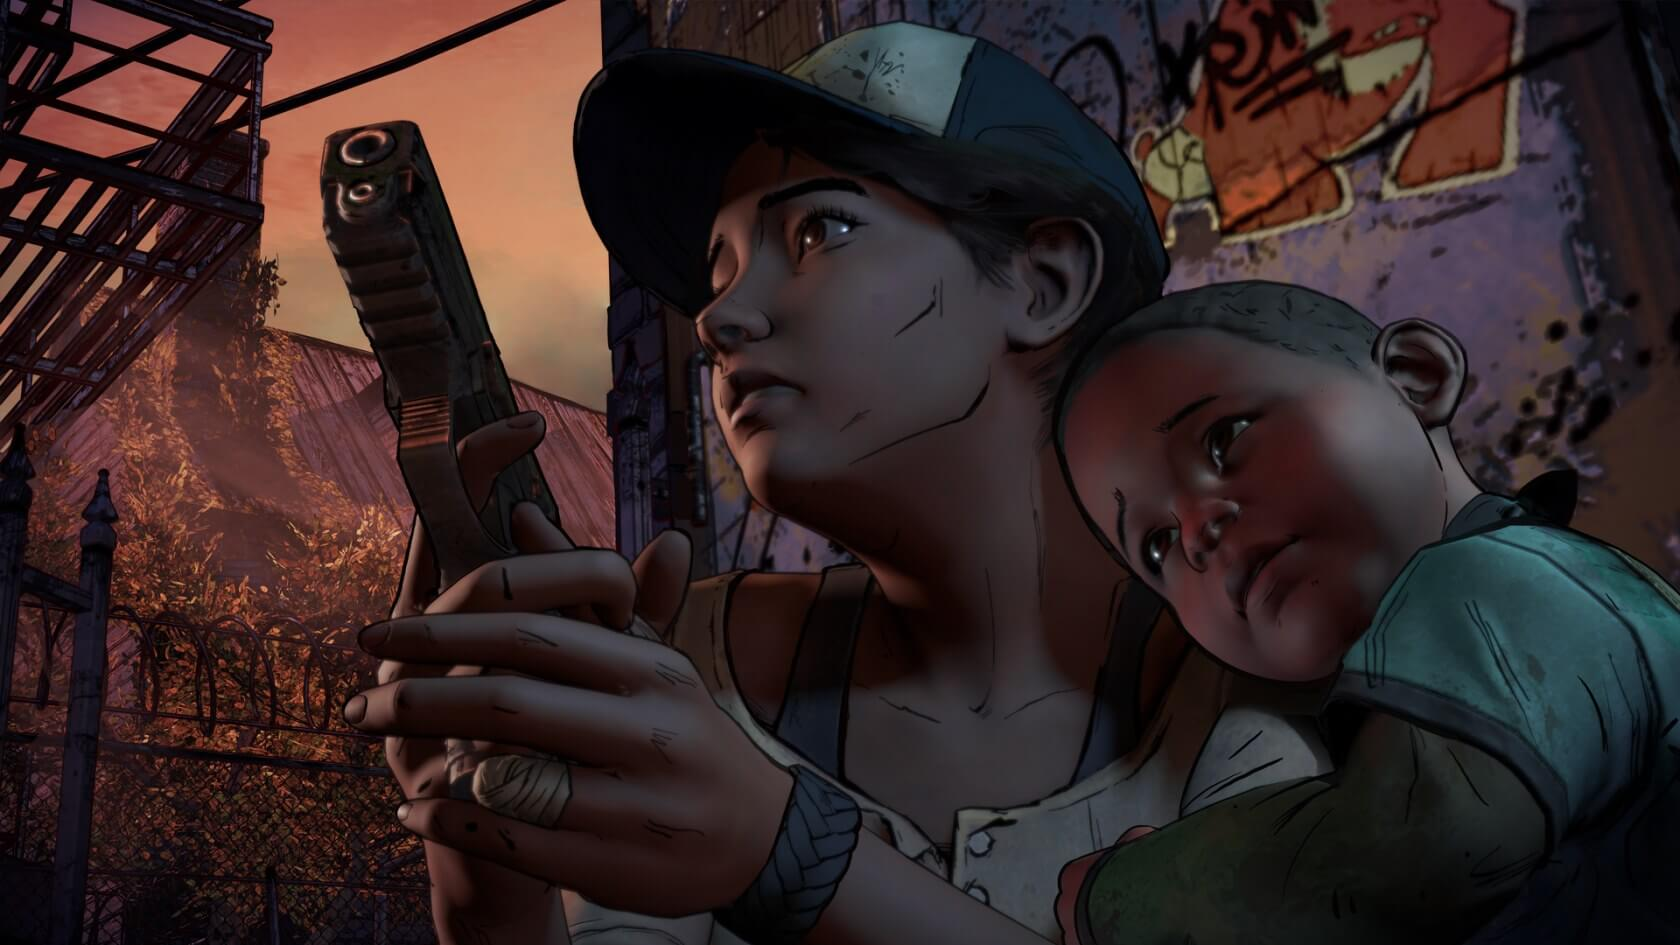 Telltale's final season of The Walking Dead has been pulled from digital storefronts